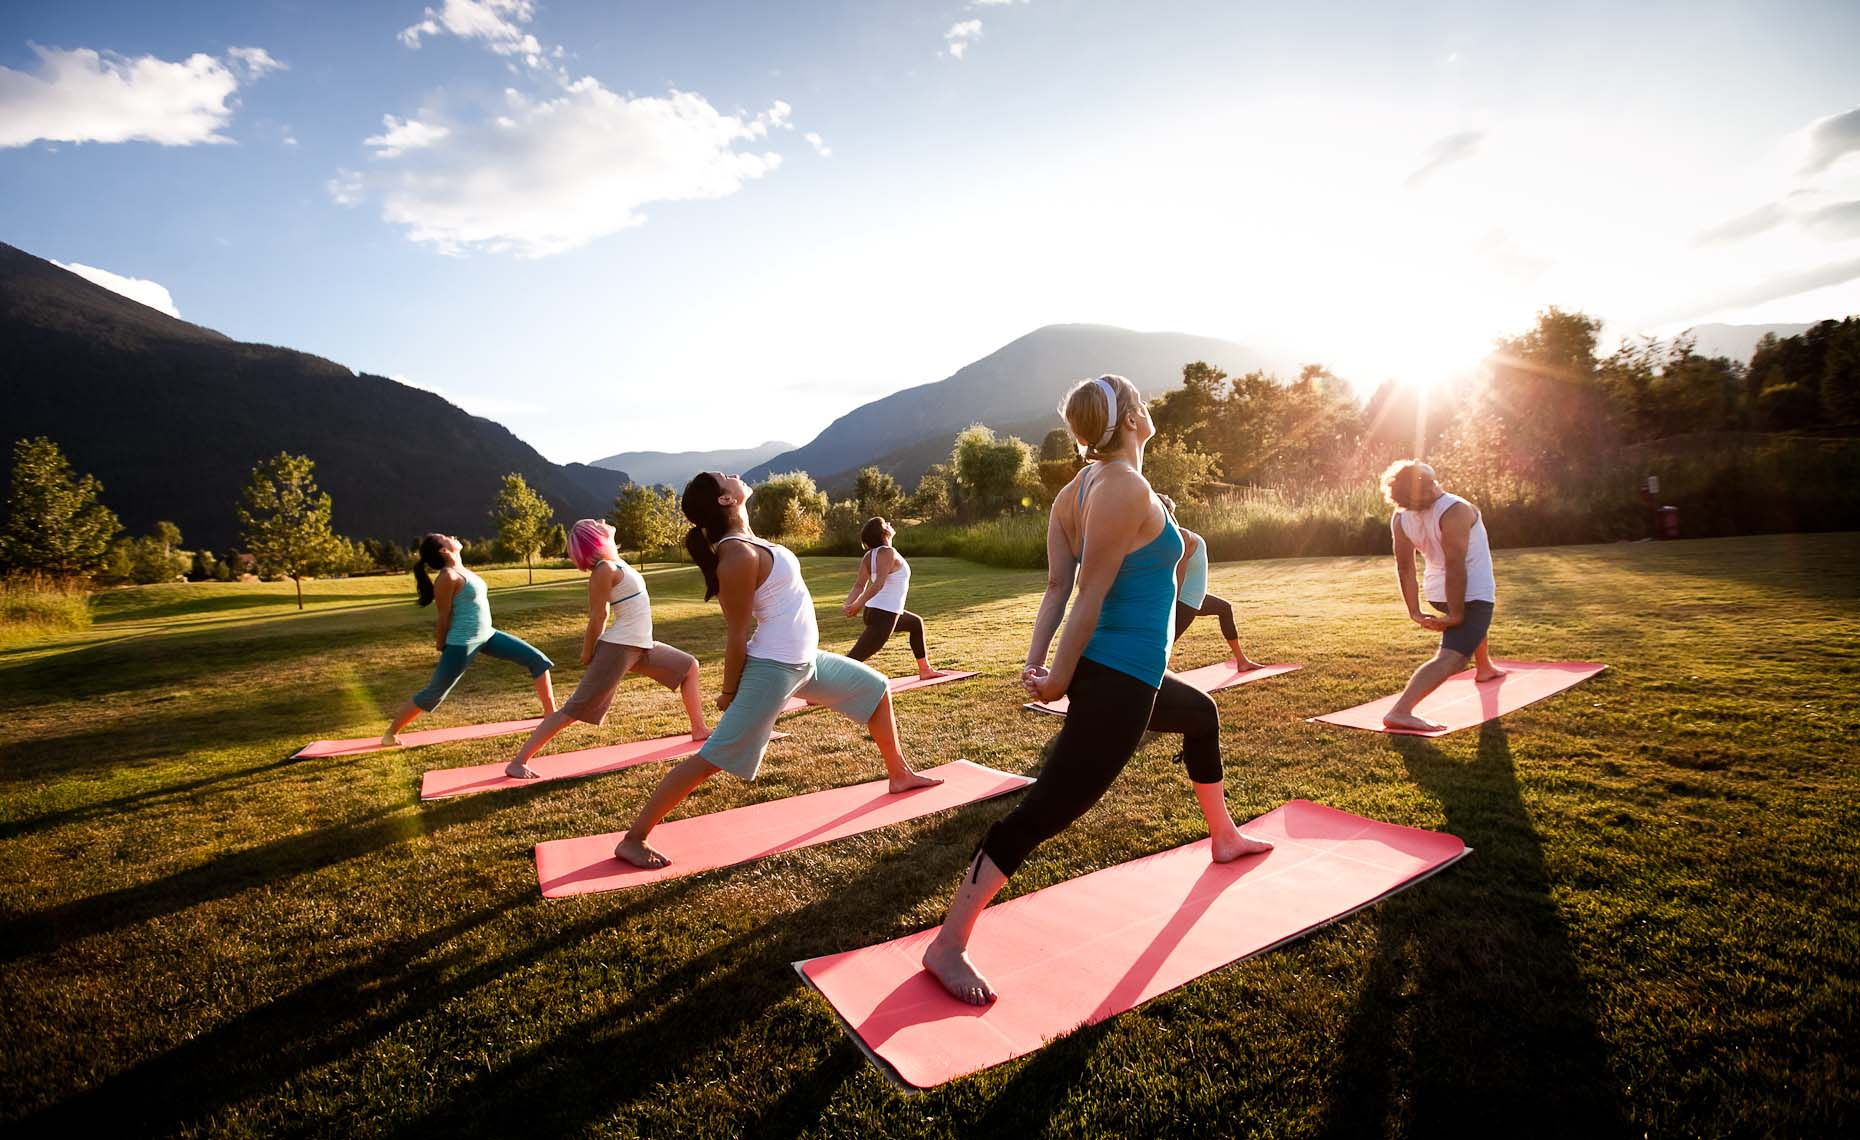 Yoga photographer shows practice in whistler.